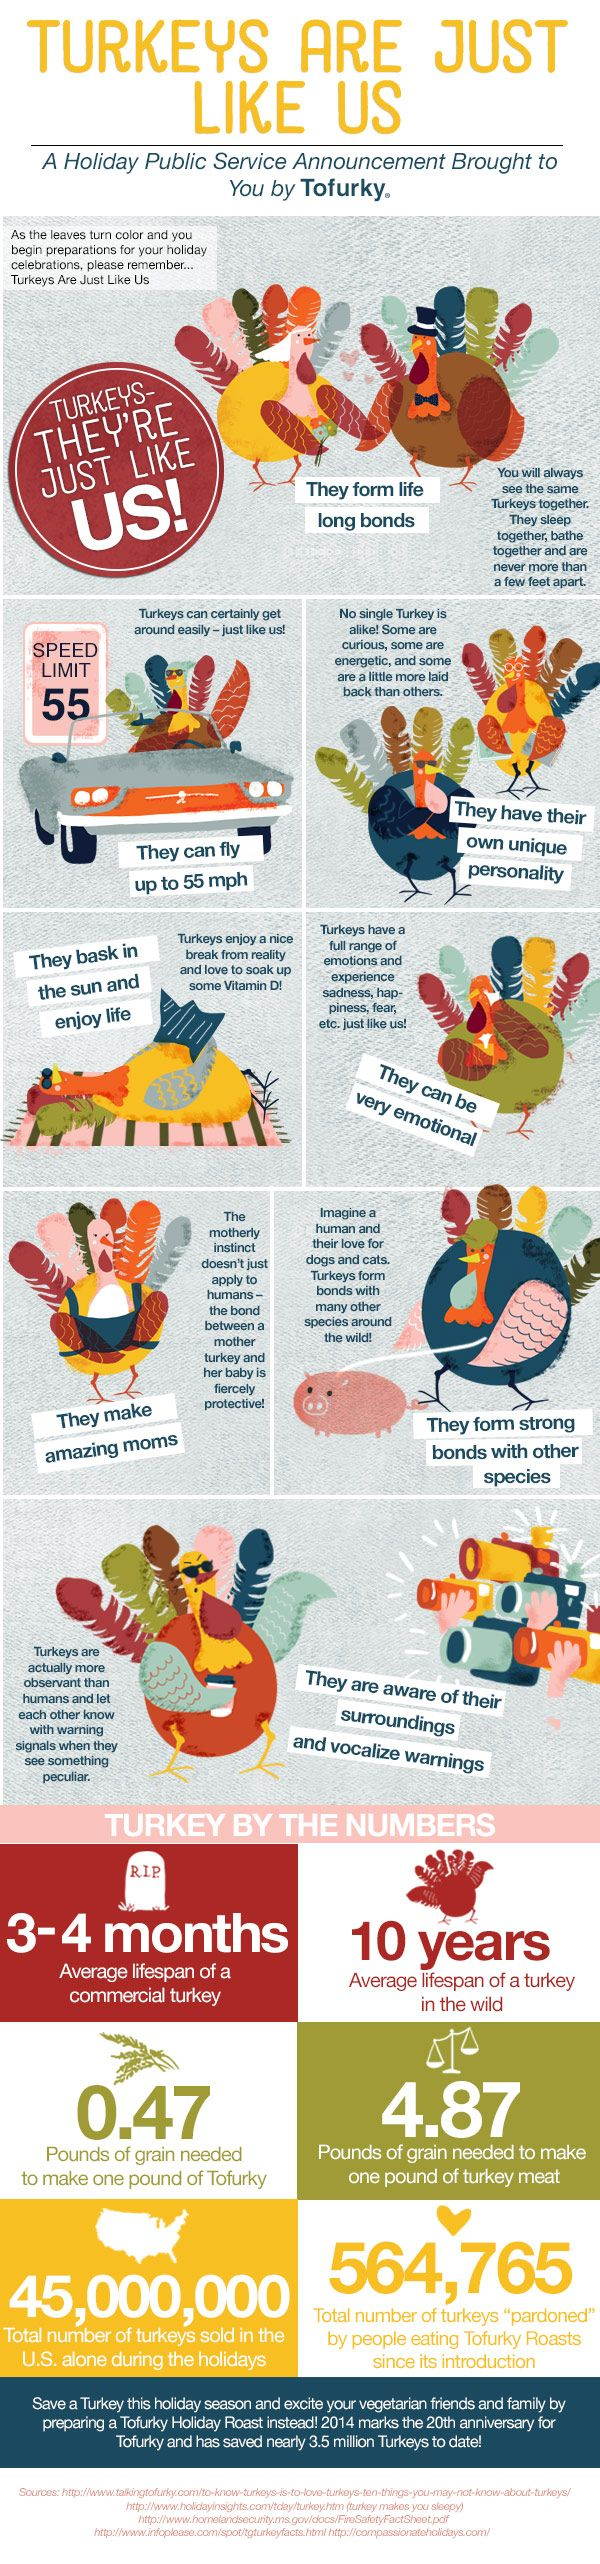 tofurkey infographic